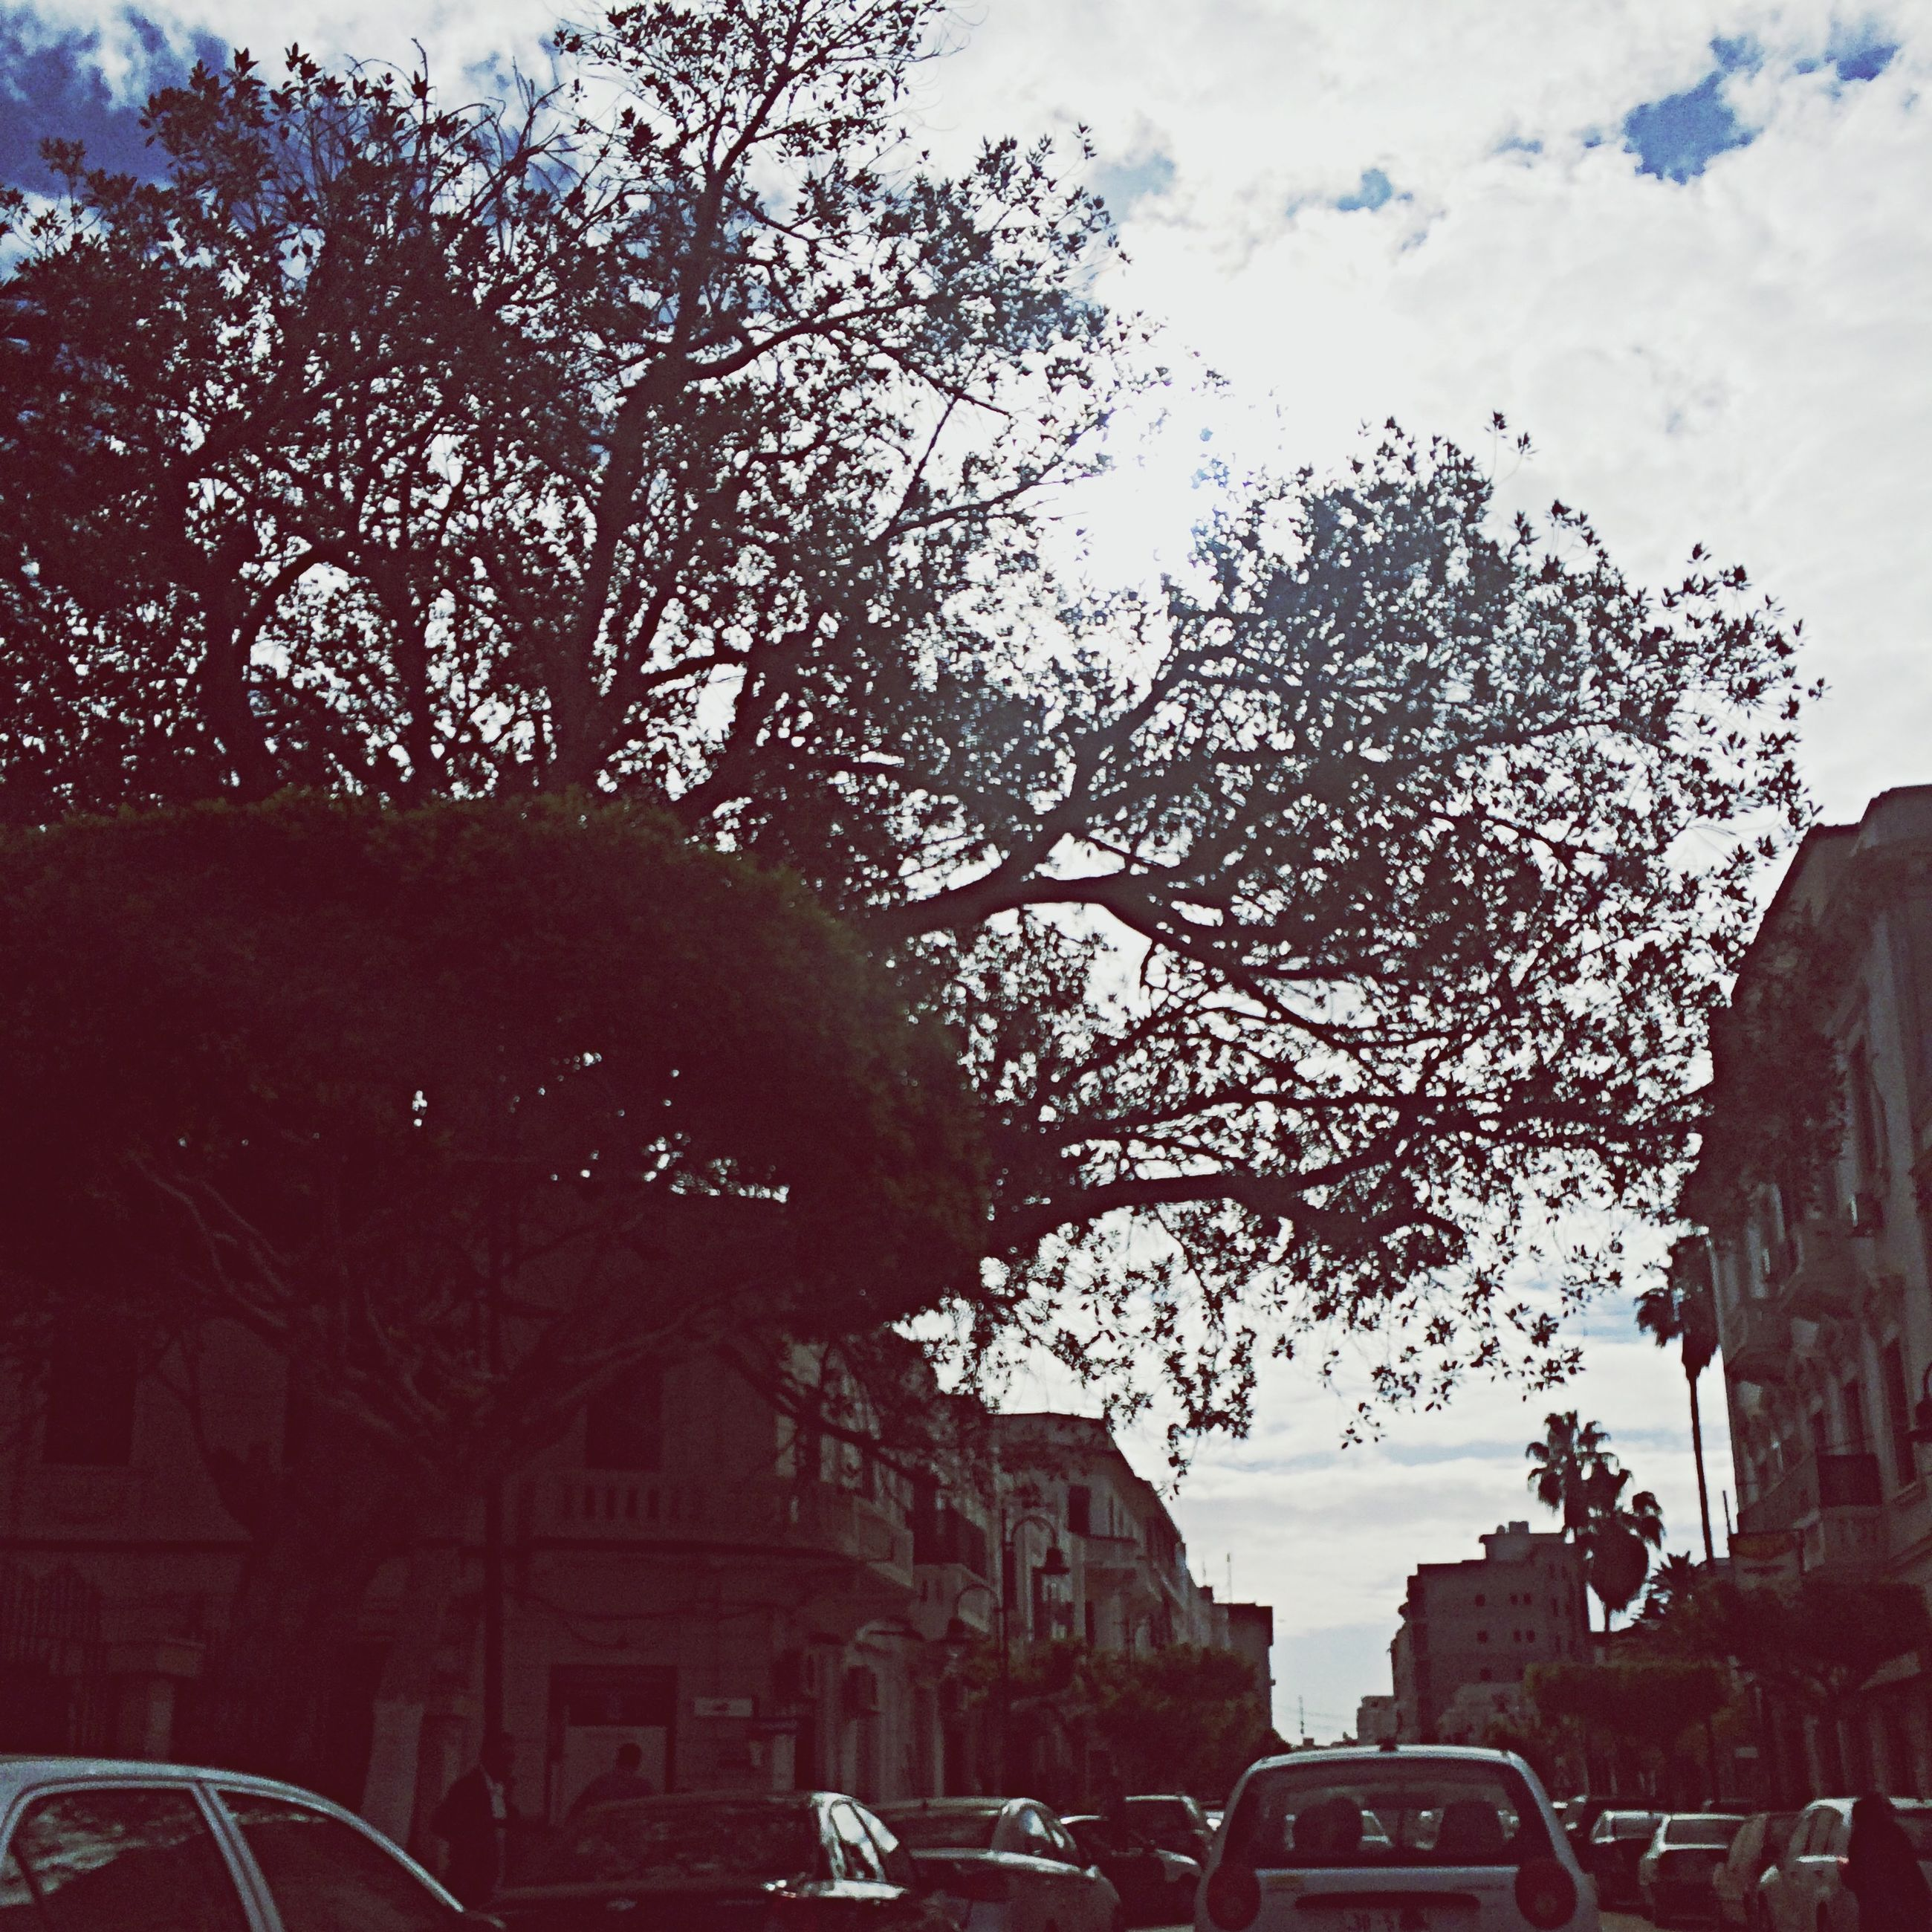 building exterior, architecture, built structure, land vehicle, car, transportation, tree, sky, mode of transport, city, low angle view, bare tree, street, branch, travel, outdoors, cloud - sky, building, day, road